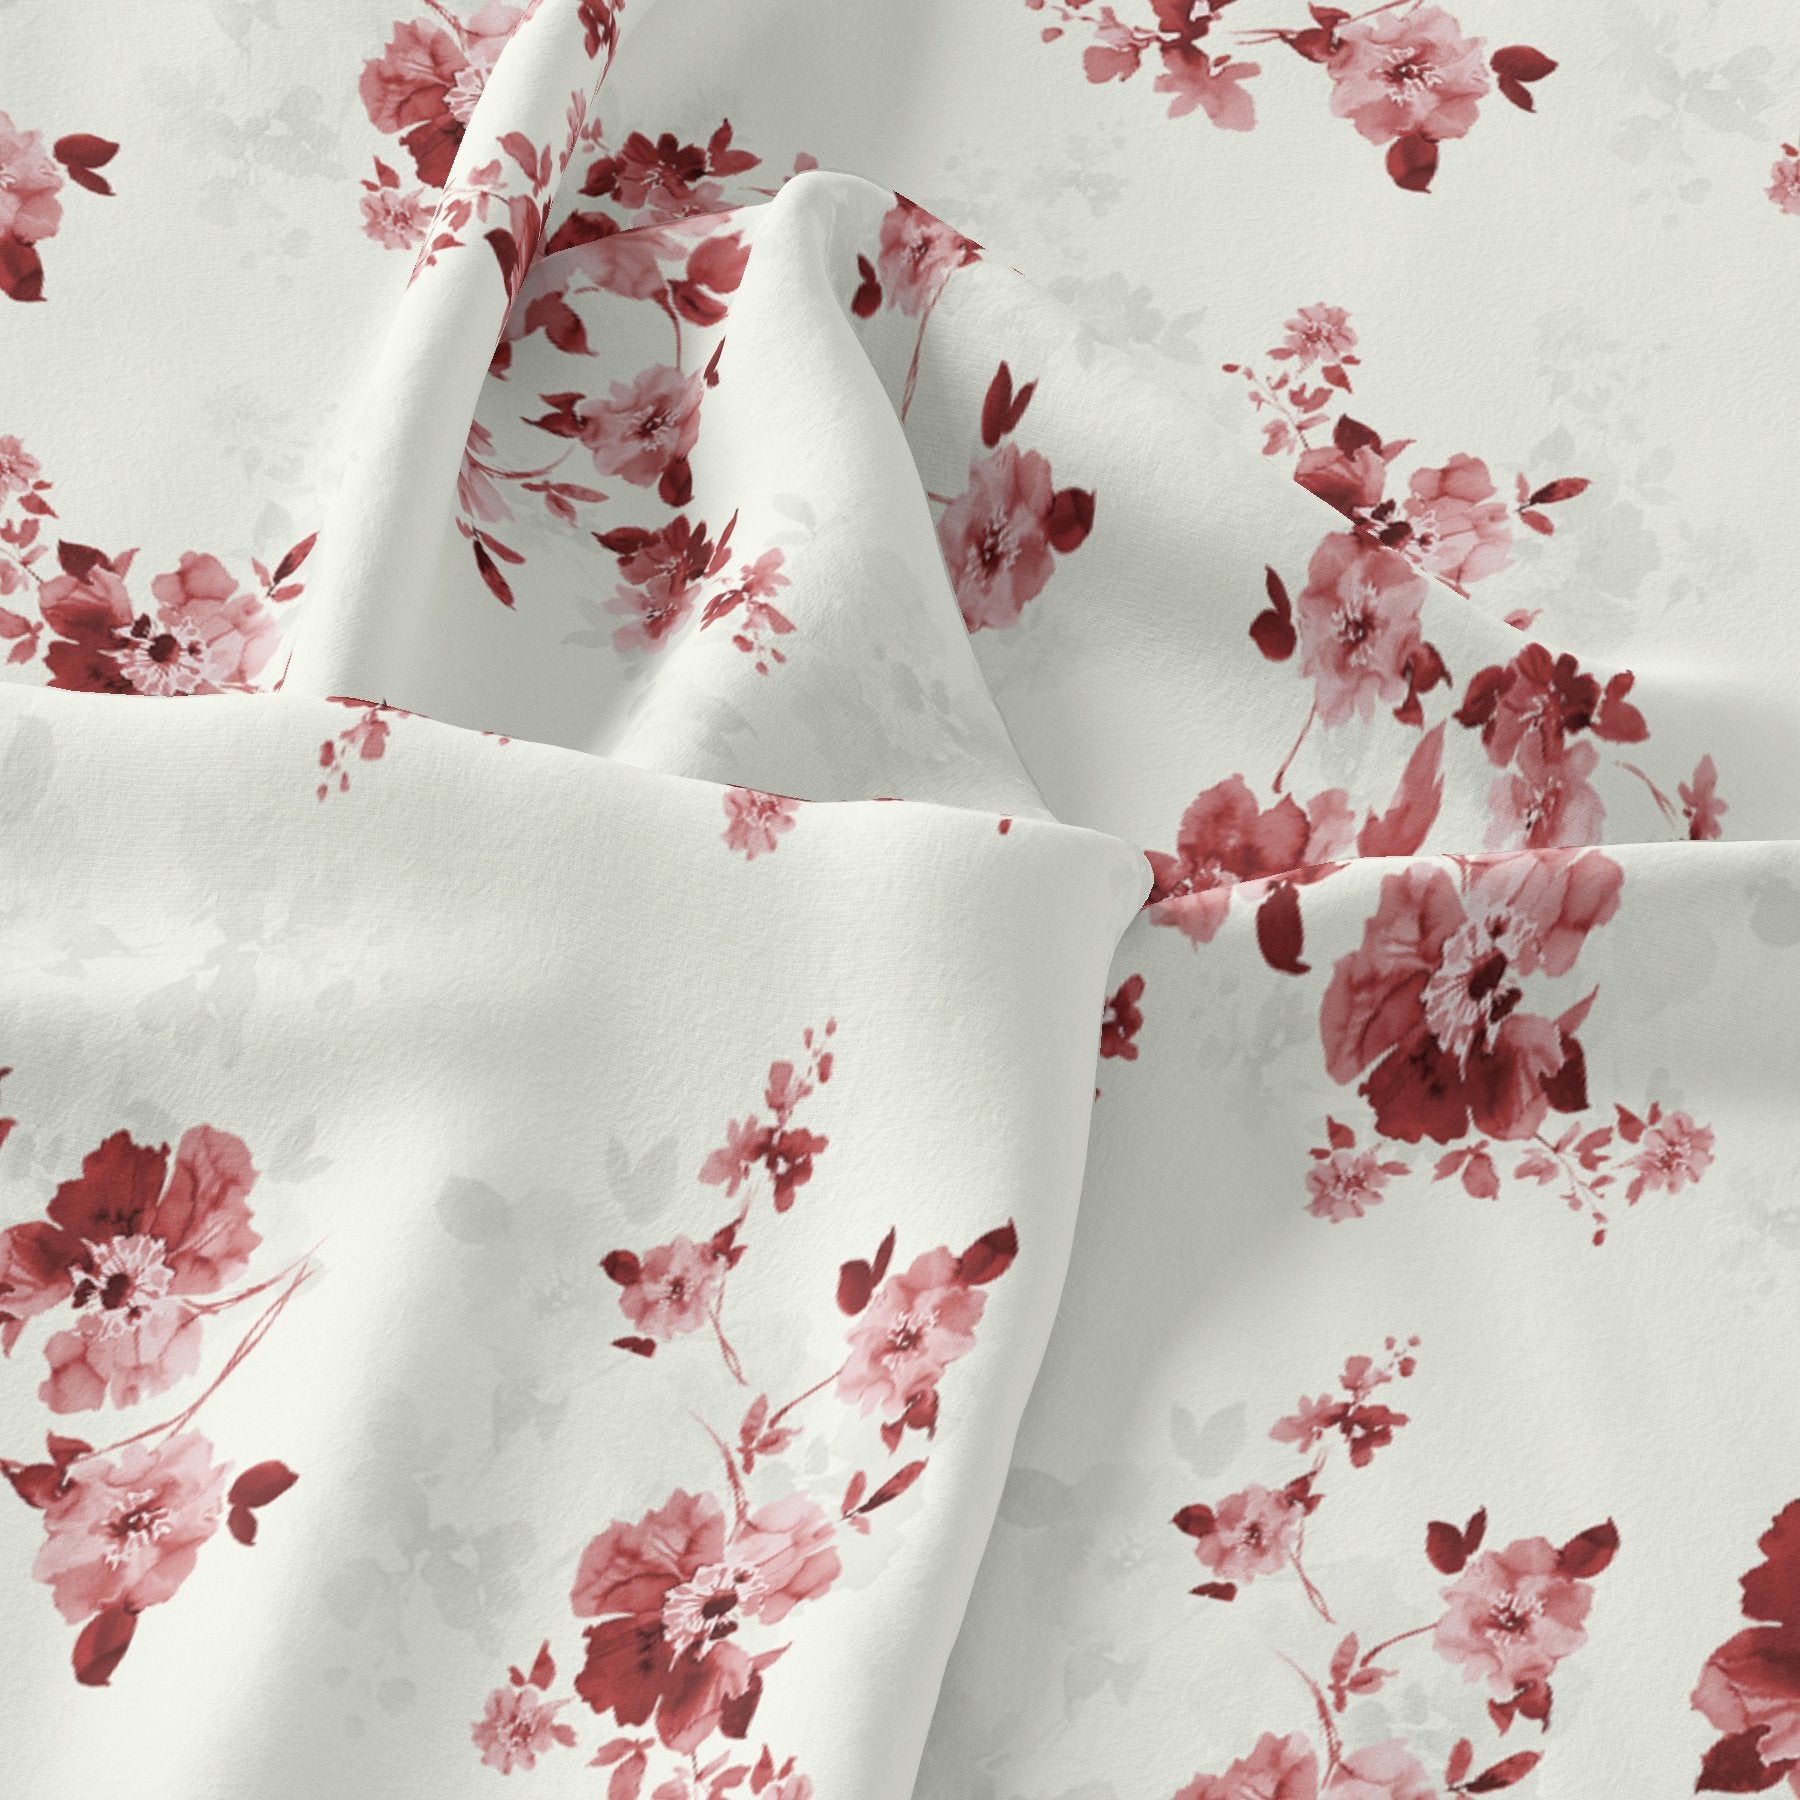 Maroon Flower Bunch Digital Printed Fabric - Pure Chiffon